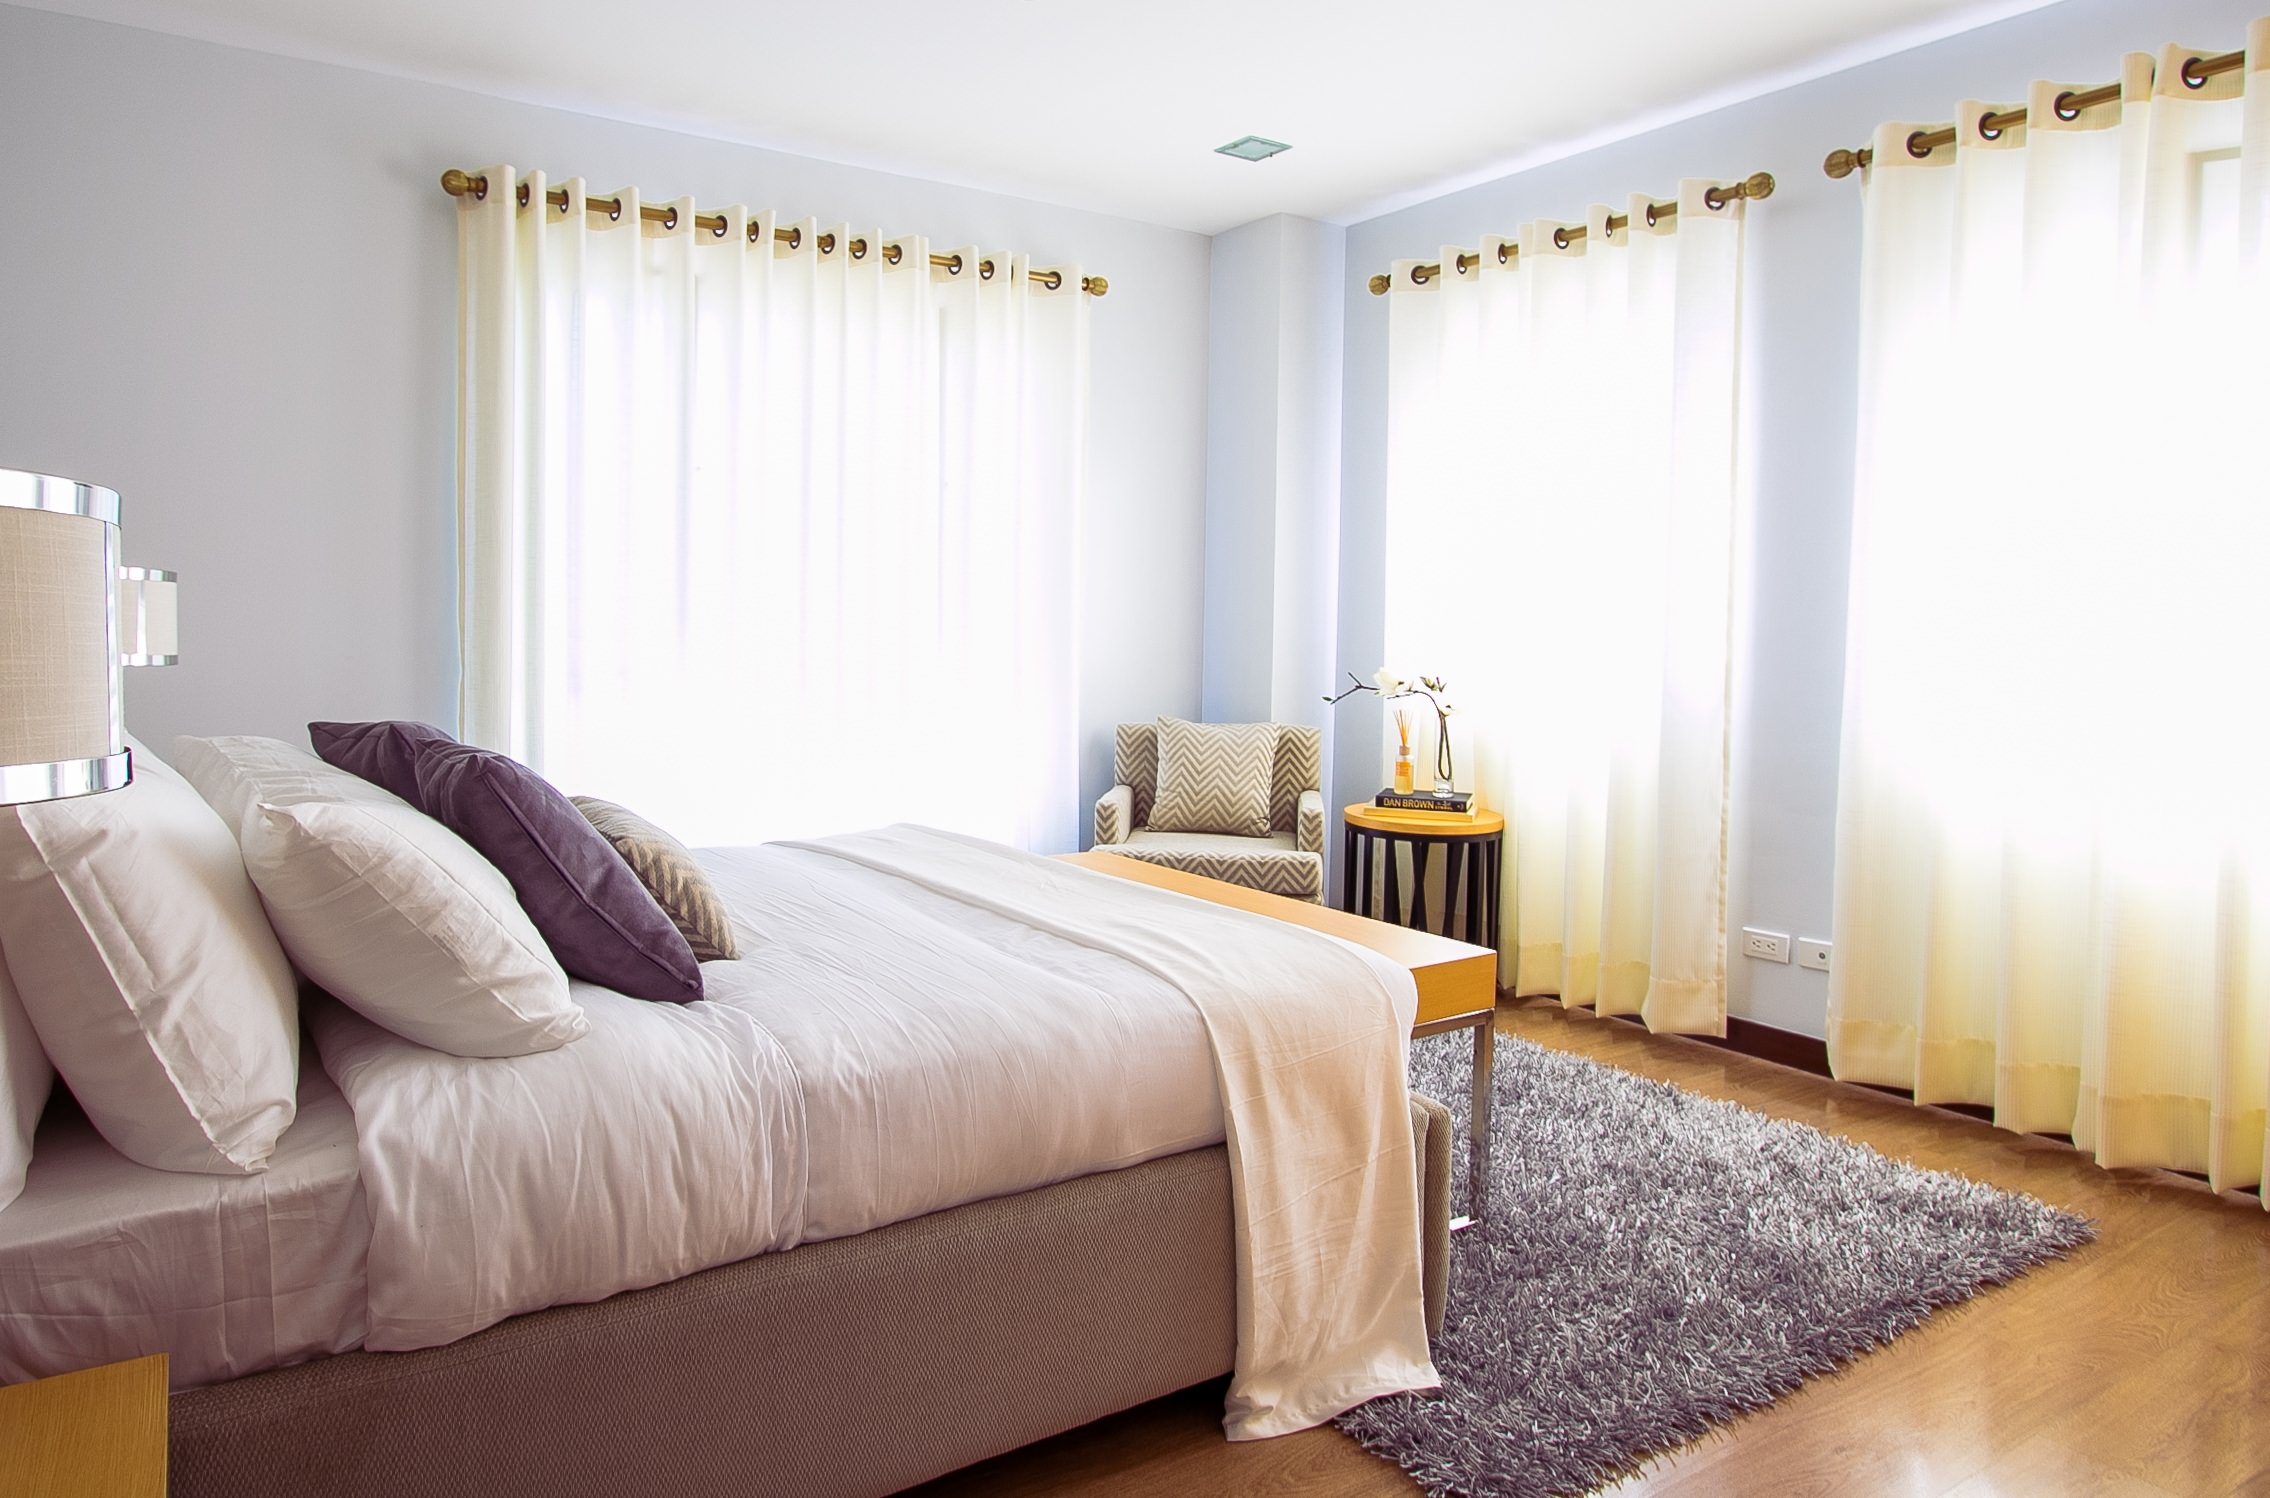 An image of a bedroom, complete with scatter cushions, and curtains hung on a wooden curtain pole.